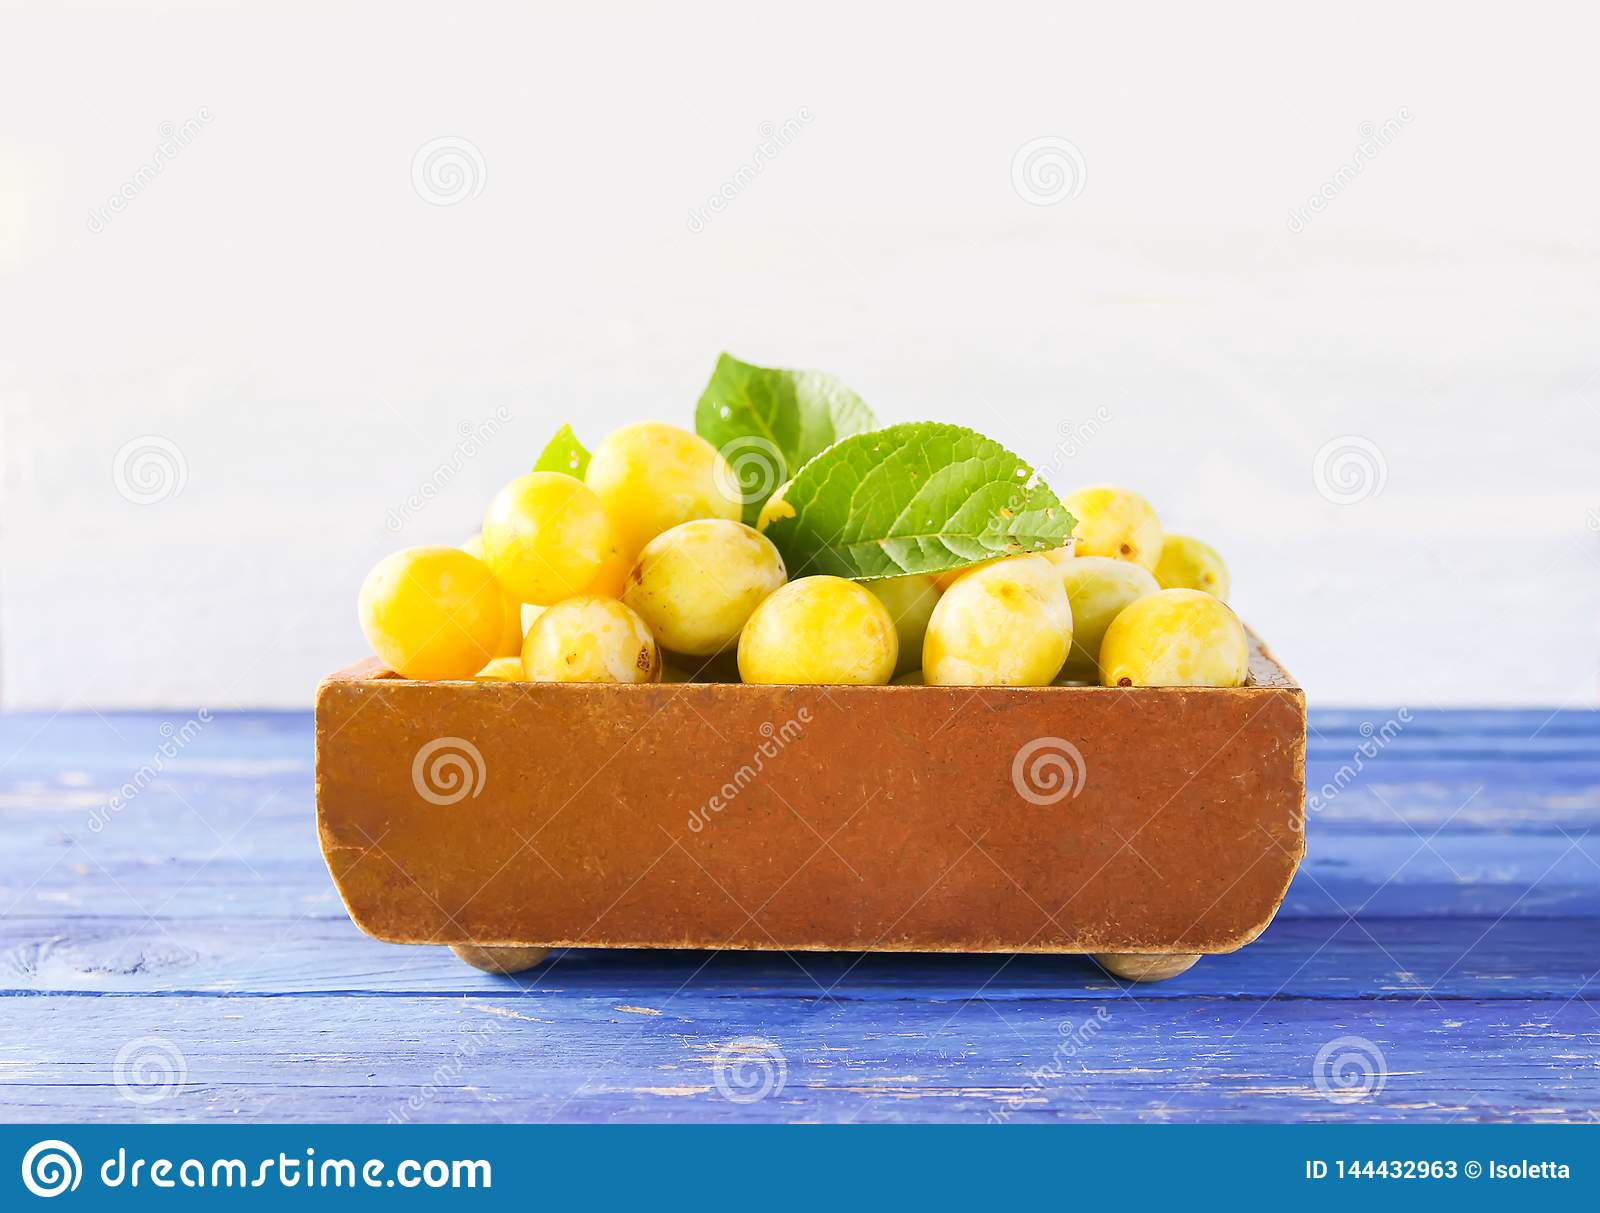 Yellow plums. Ripe fruits in a wooden box on white background